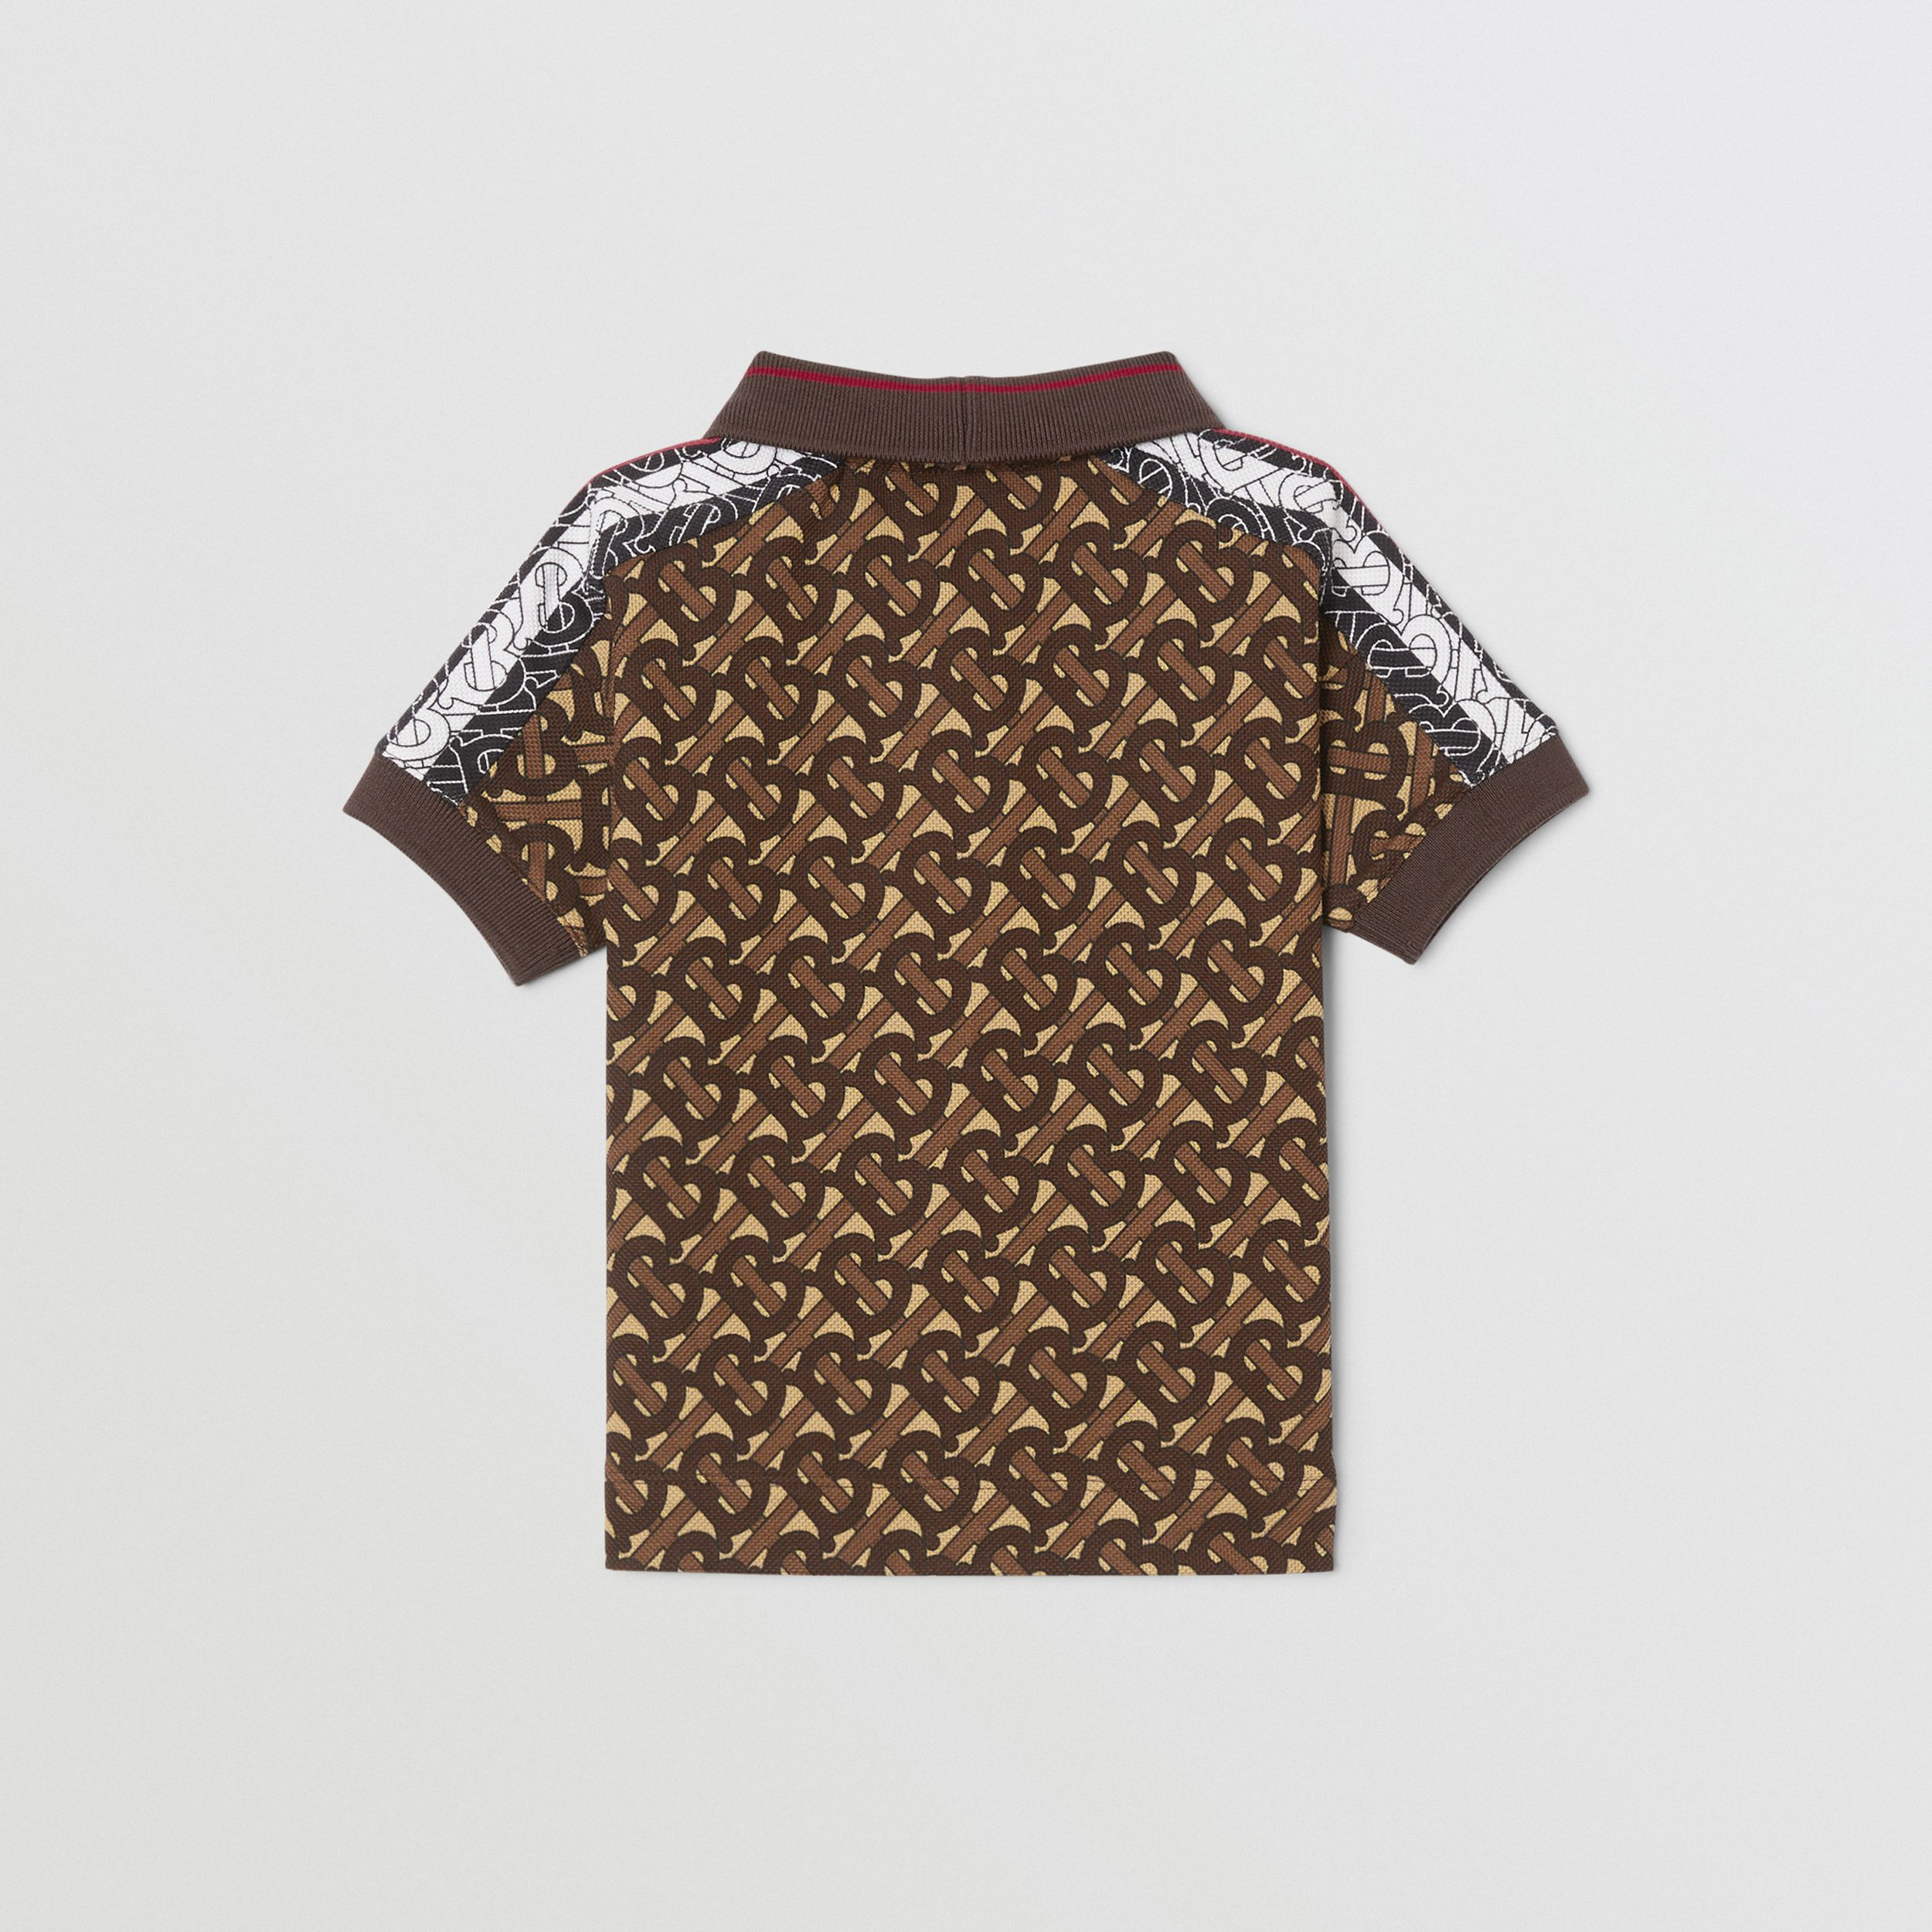 Monogram Stripe Print Cotton Piqué Polo Shirt in Bridle Brown - Children | Burberry - 4